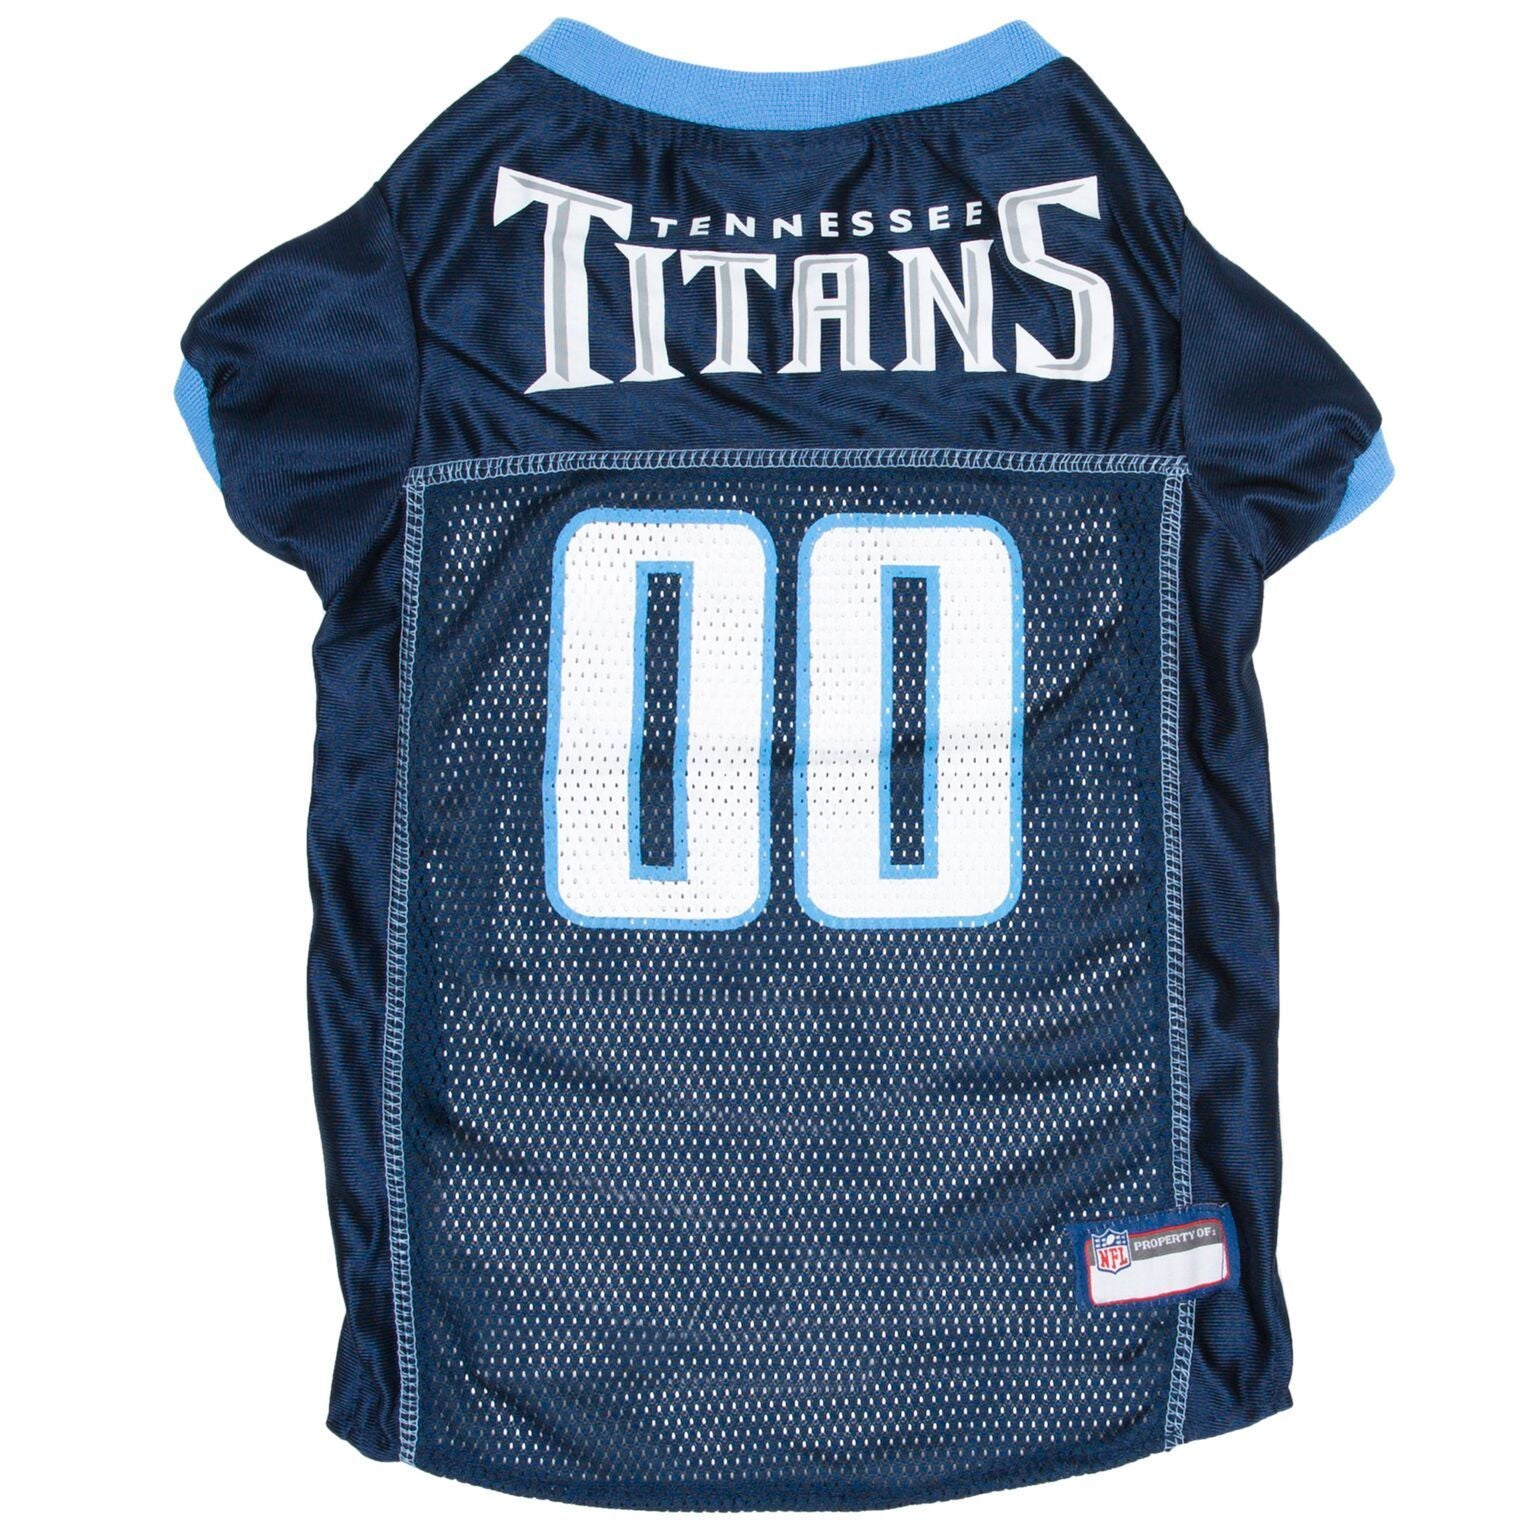 Tennessee Titans Football Jersey Cheerleading Uniform Collar Leash - Jersey Champs - Custom Basketball, Baseball, Football & Hockey Jerseys